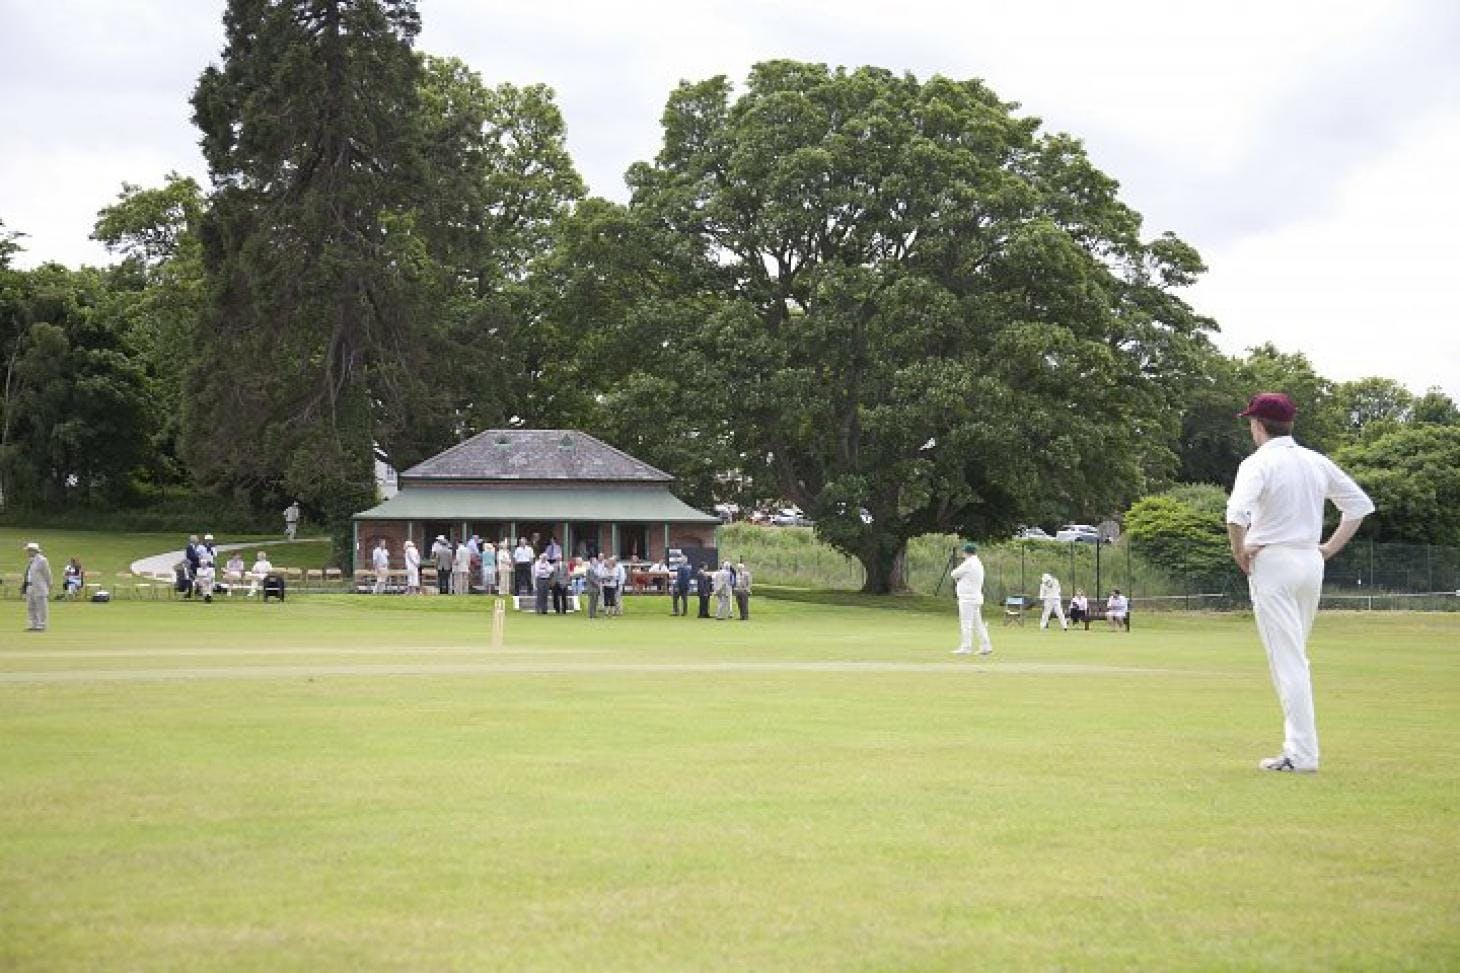 St Columba's College Outdoor | Grass cricket facilities